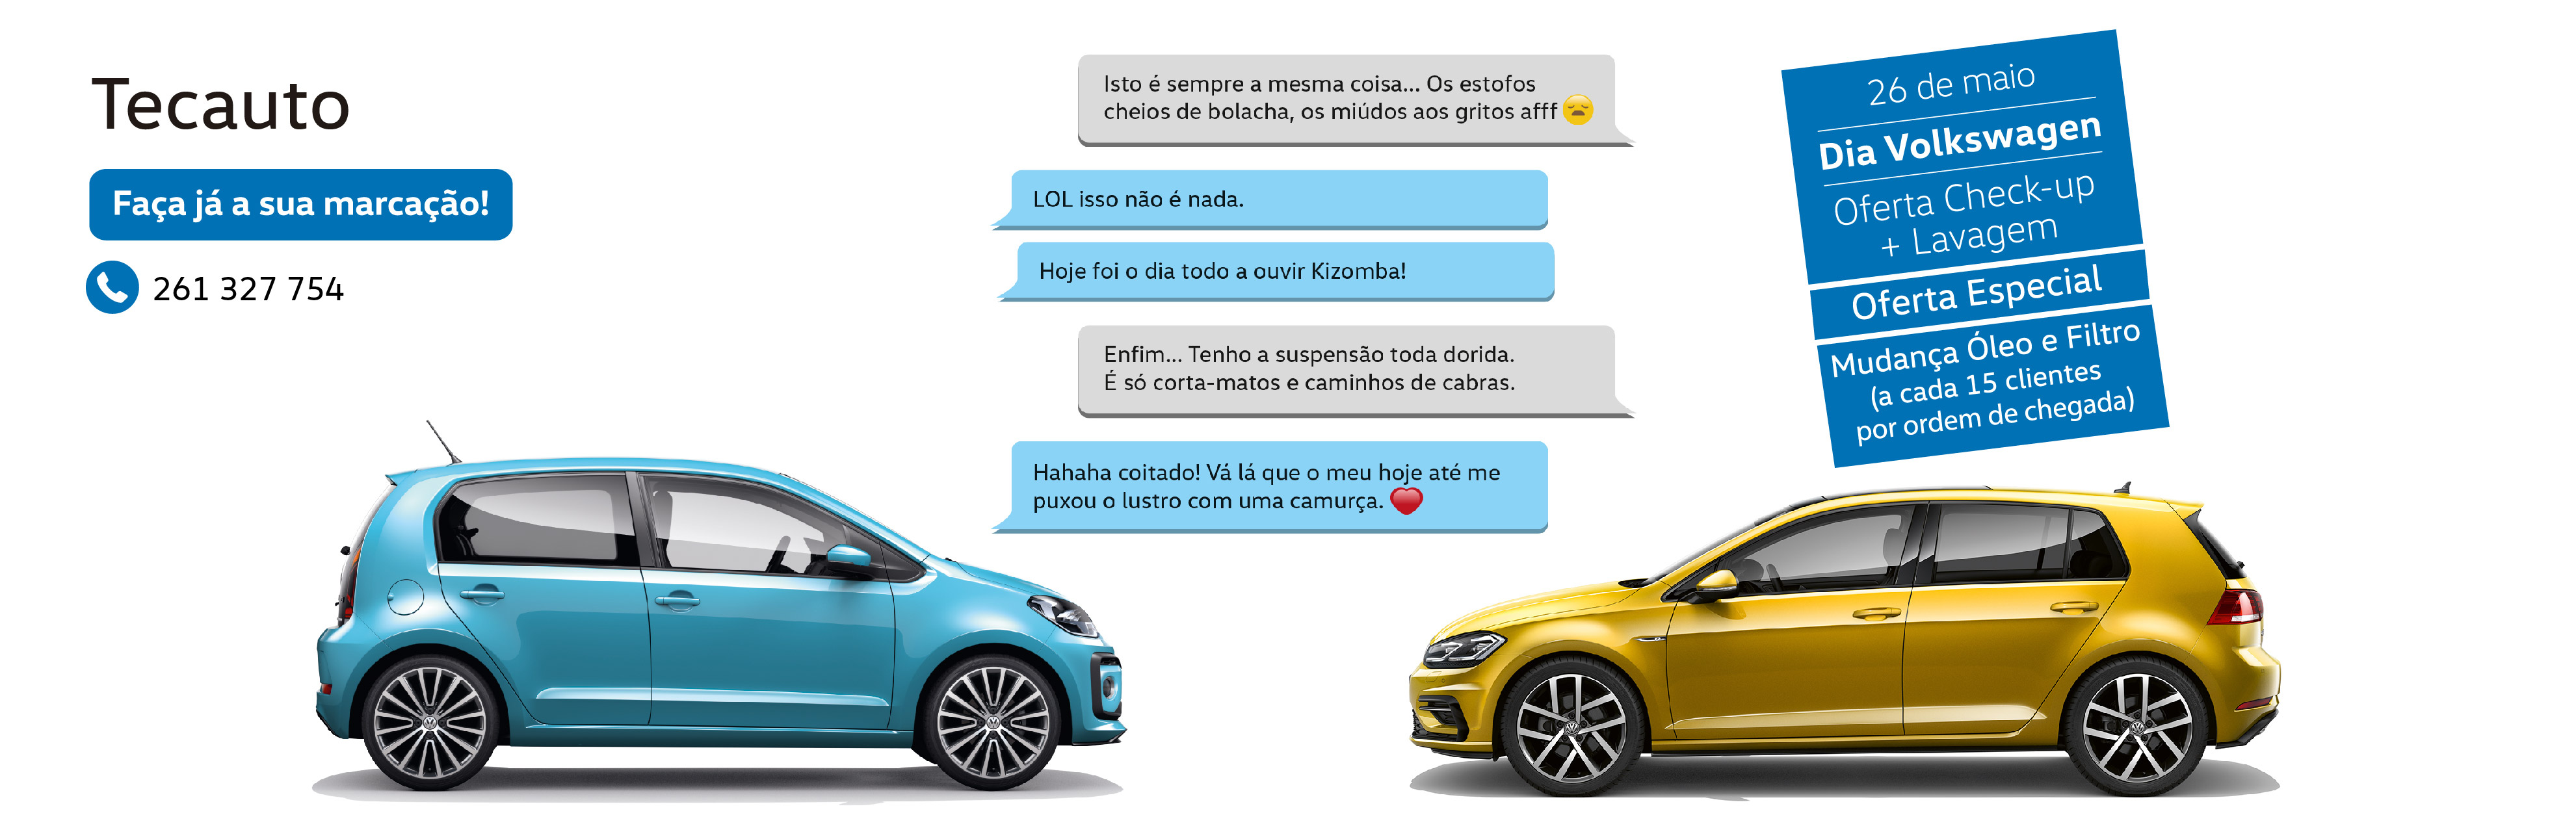 Dia do Cliente VW